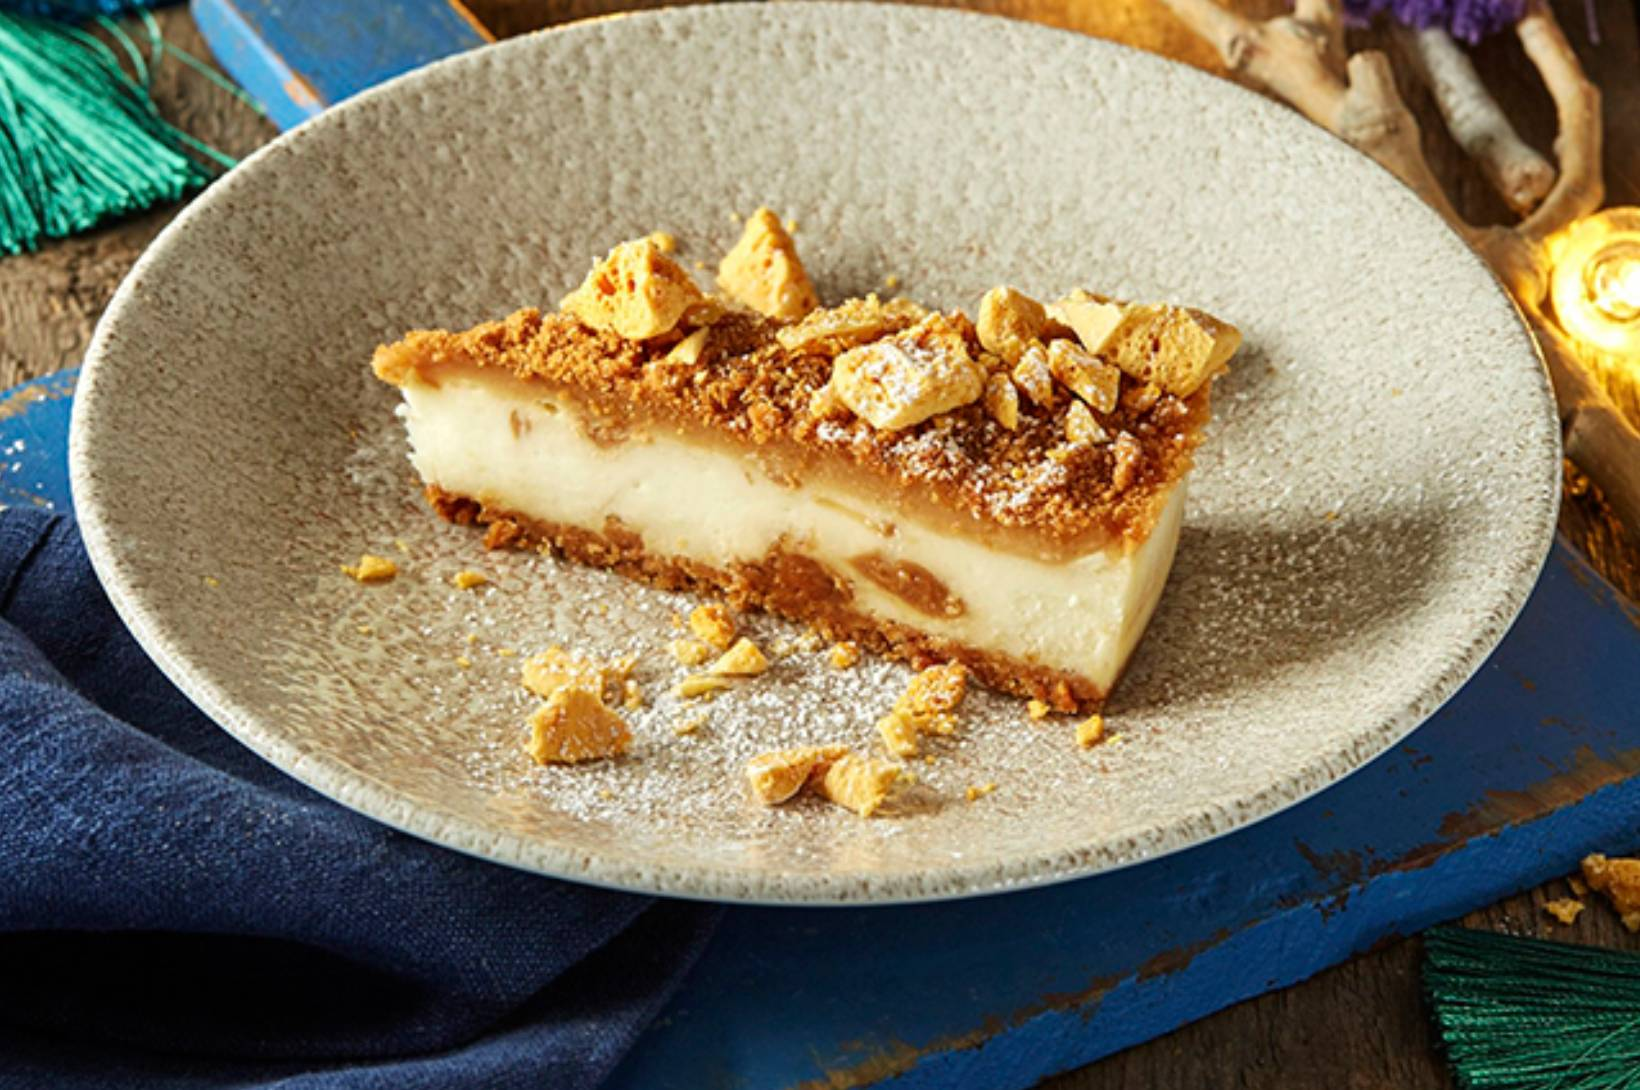 Zizzi vegan cheesecake